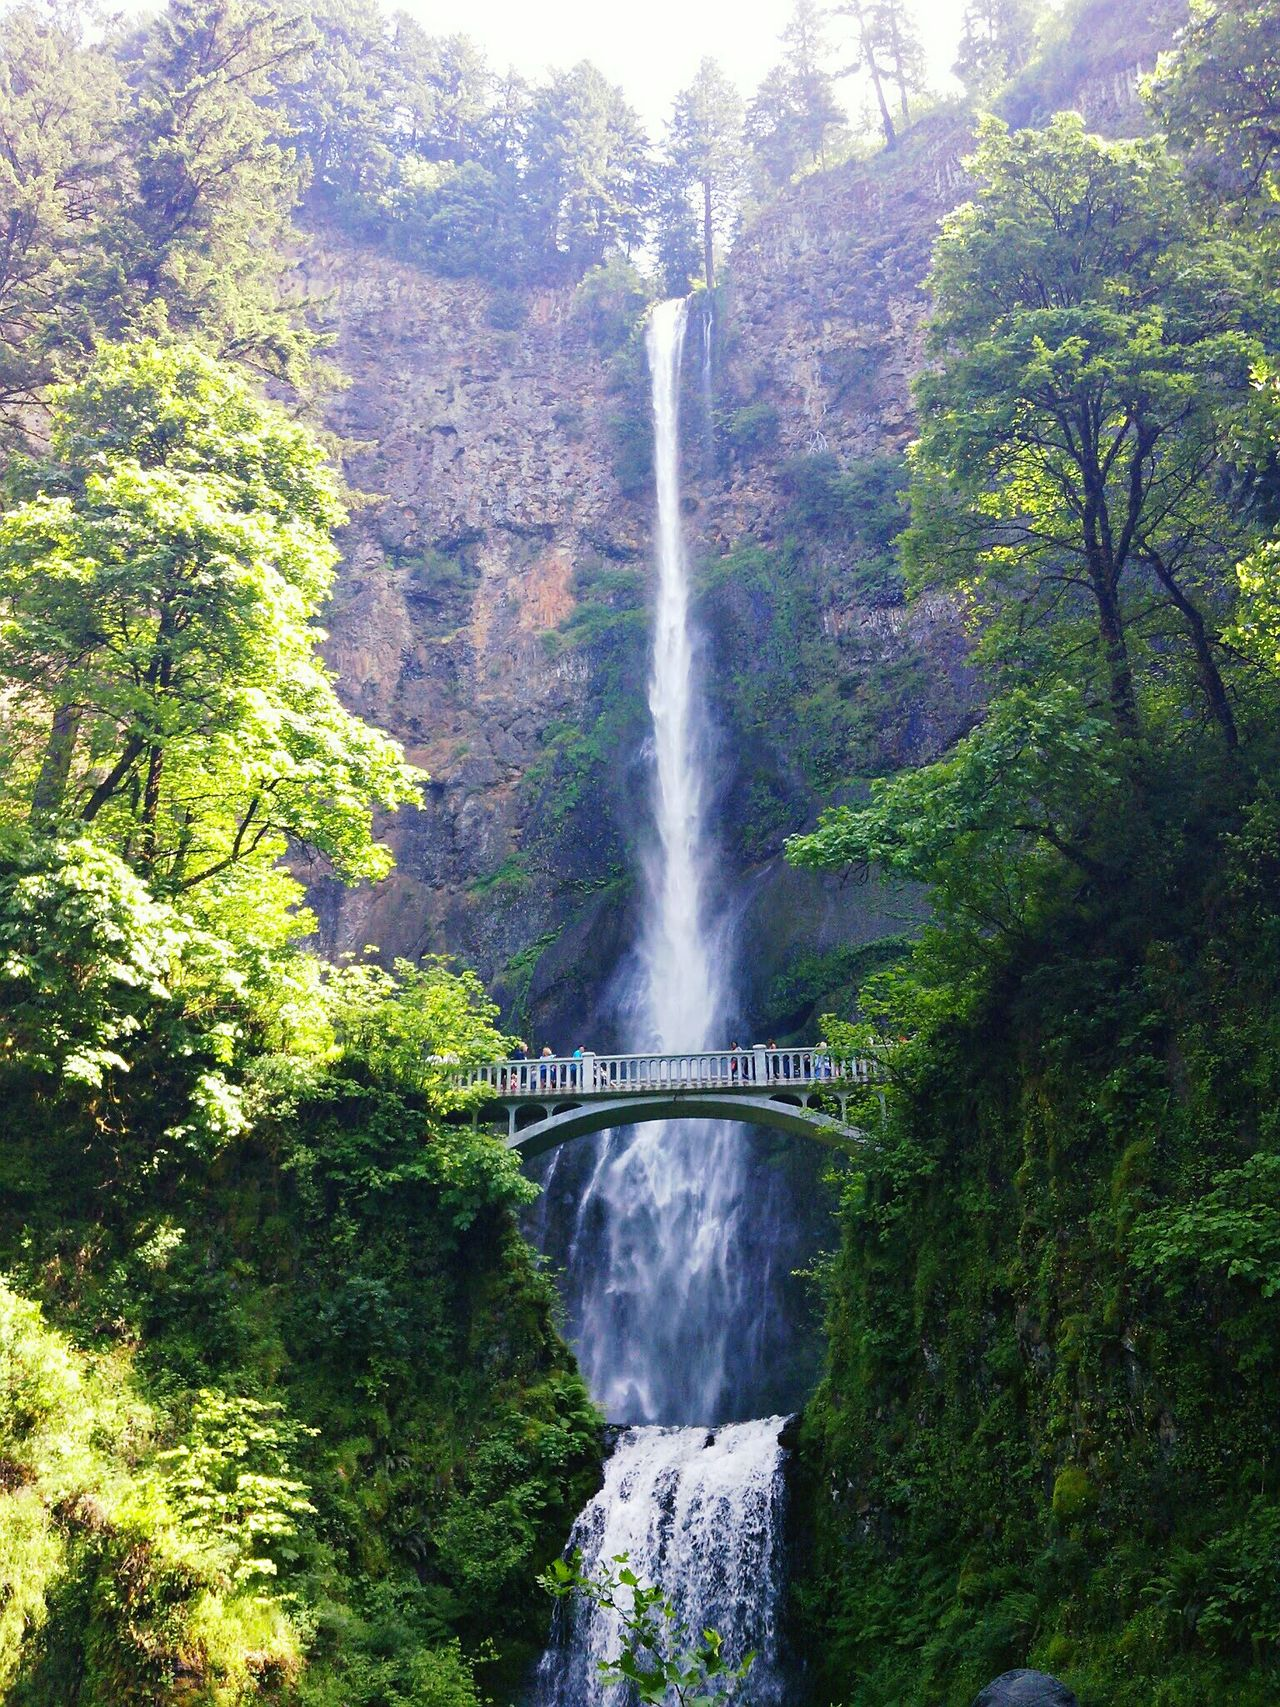 @oregon Waterfall Motion Water Long Exposure Flowing Water Splashing Nature Outdoors Scenics Tree Beauty In Nature Spraying Blurred Motion Day Speed Power In Nature Bridge - Man Made Structure Rainbow Rapid Forest Multnomah Falls